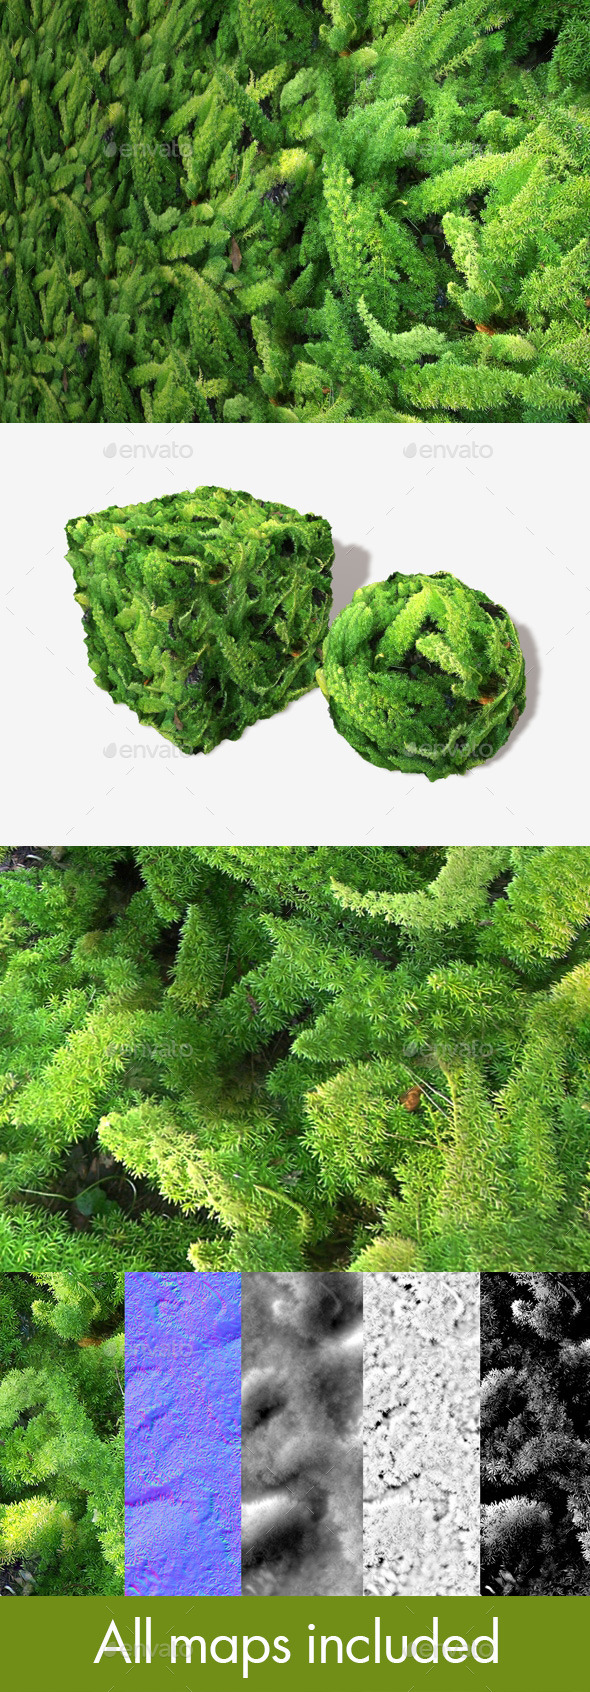 Furry Jungle Plants Seamless Texture - 3DOcean Item for Sale